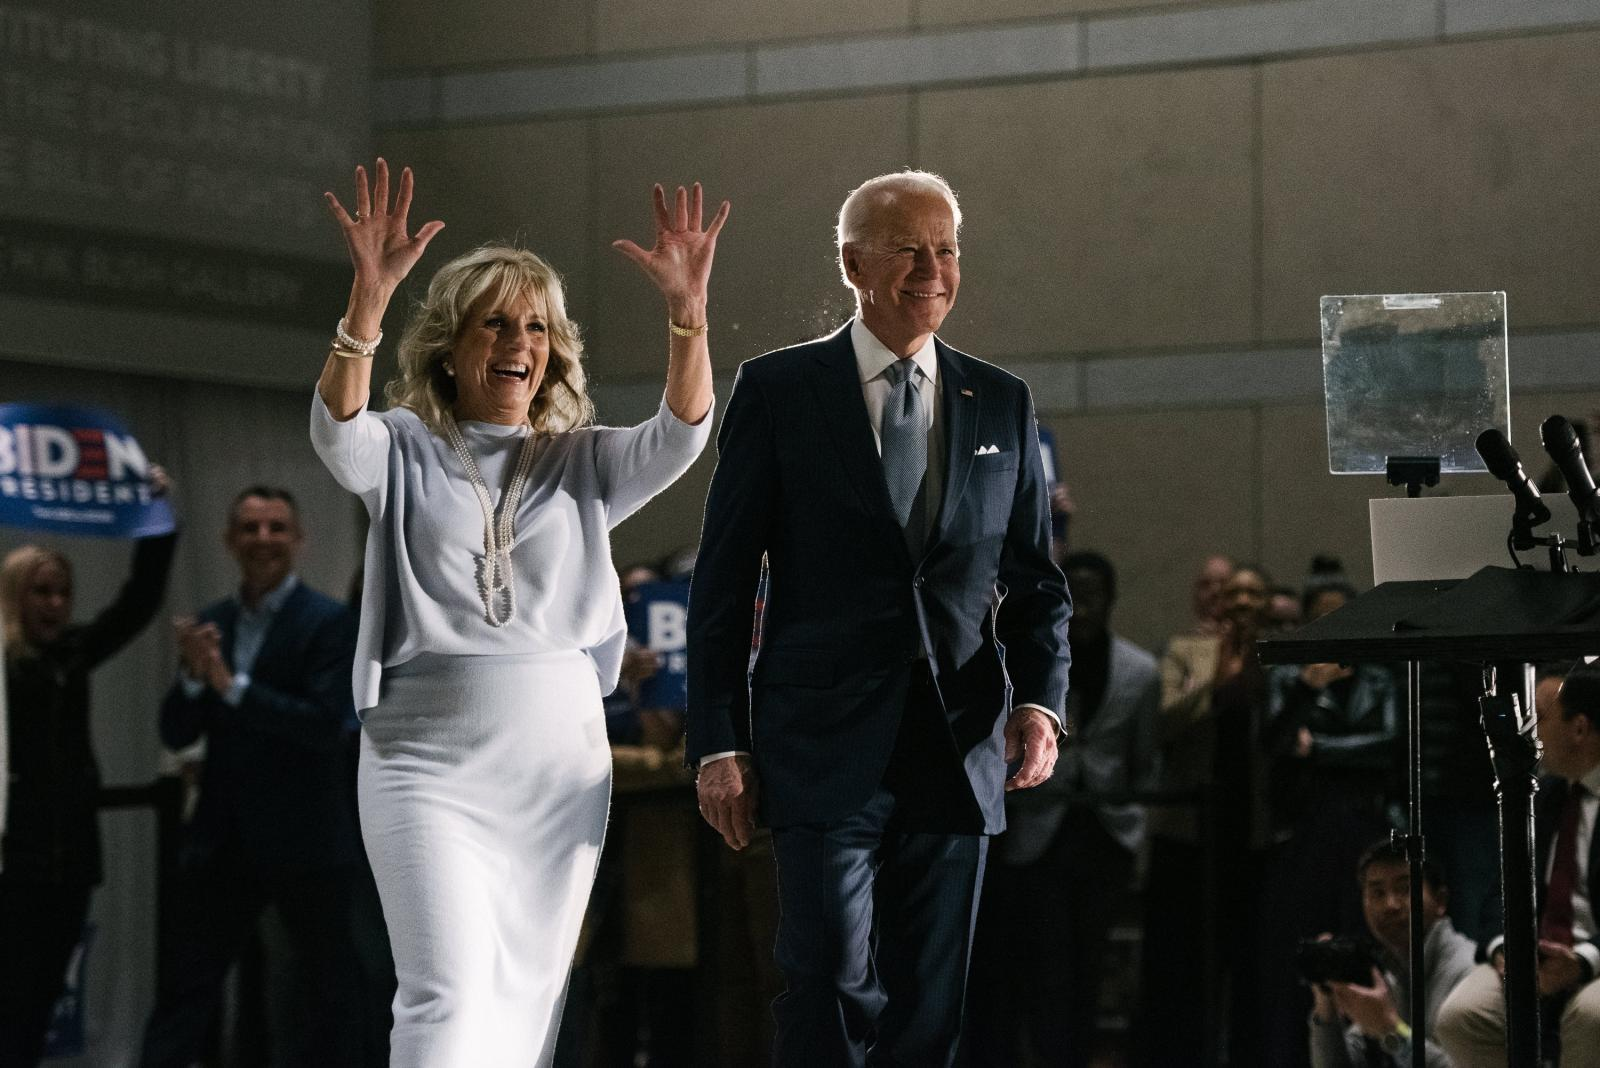 Former Vice President Joseph R. Biden Jr., right, walks in with his wife, Jill Biden, at the National Constitution Center in Philadelphia, PA on Tuesday, March 10, 2020. Biden and Senator Bernie Sanders both cancelled their Cleveland, Ohio rallies because of concerns about the coronavirus. Hannah Yoon NYTPRIMARY